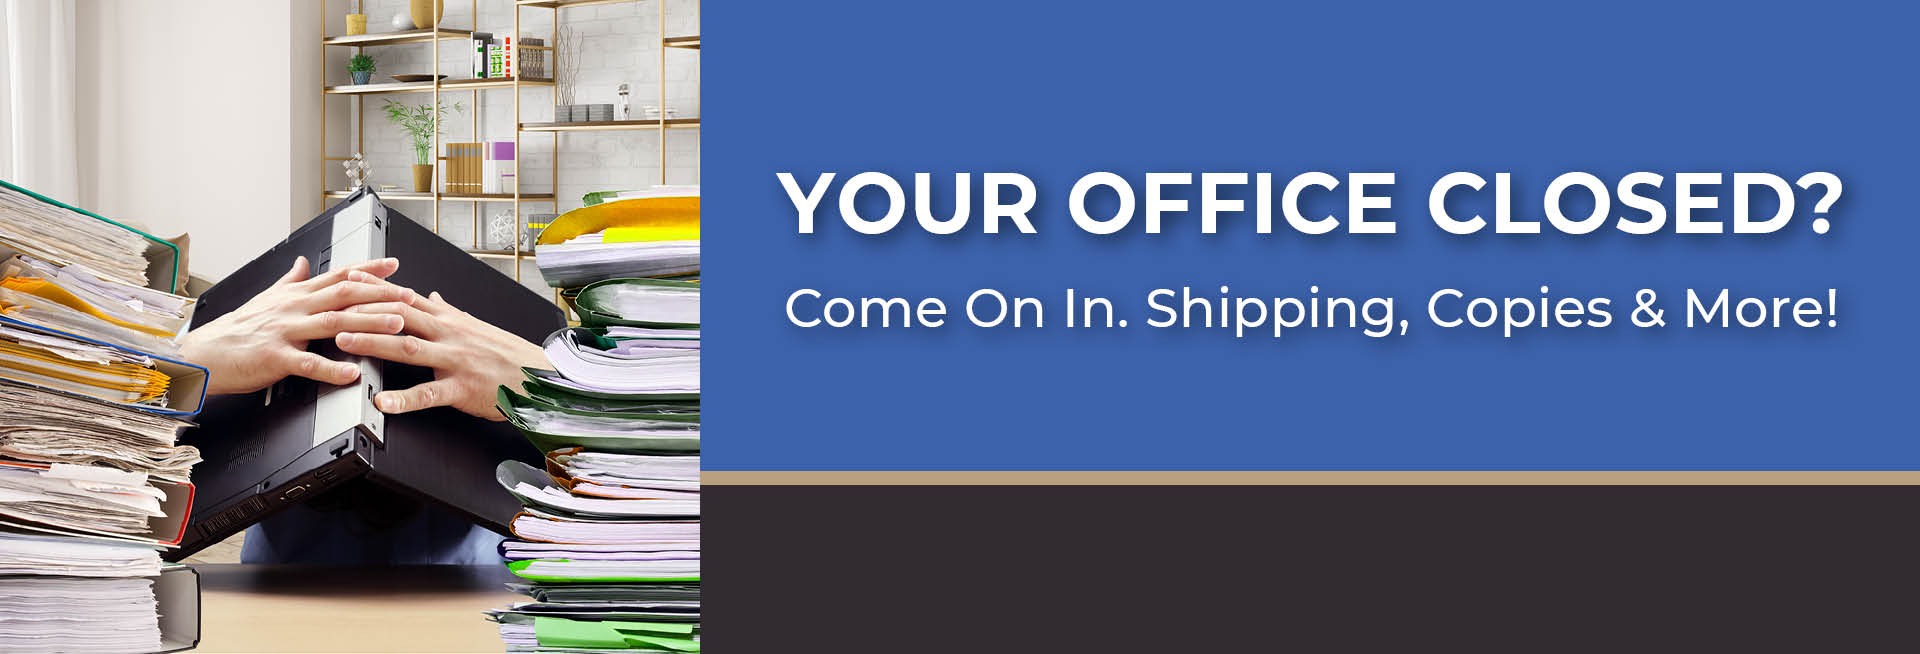 Your Office Closed? Come On In. Shipping, Copies & More!